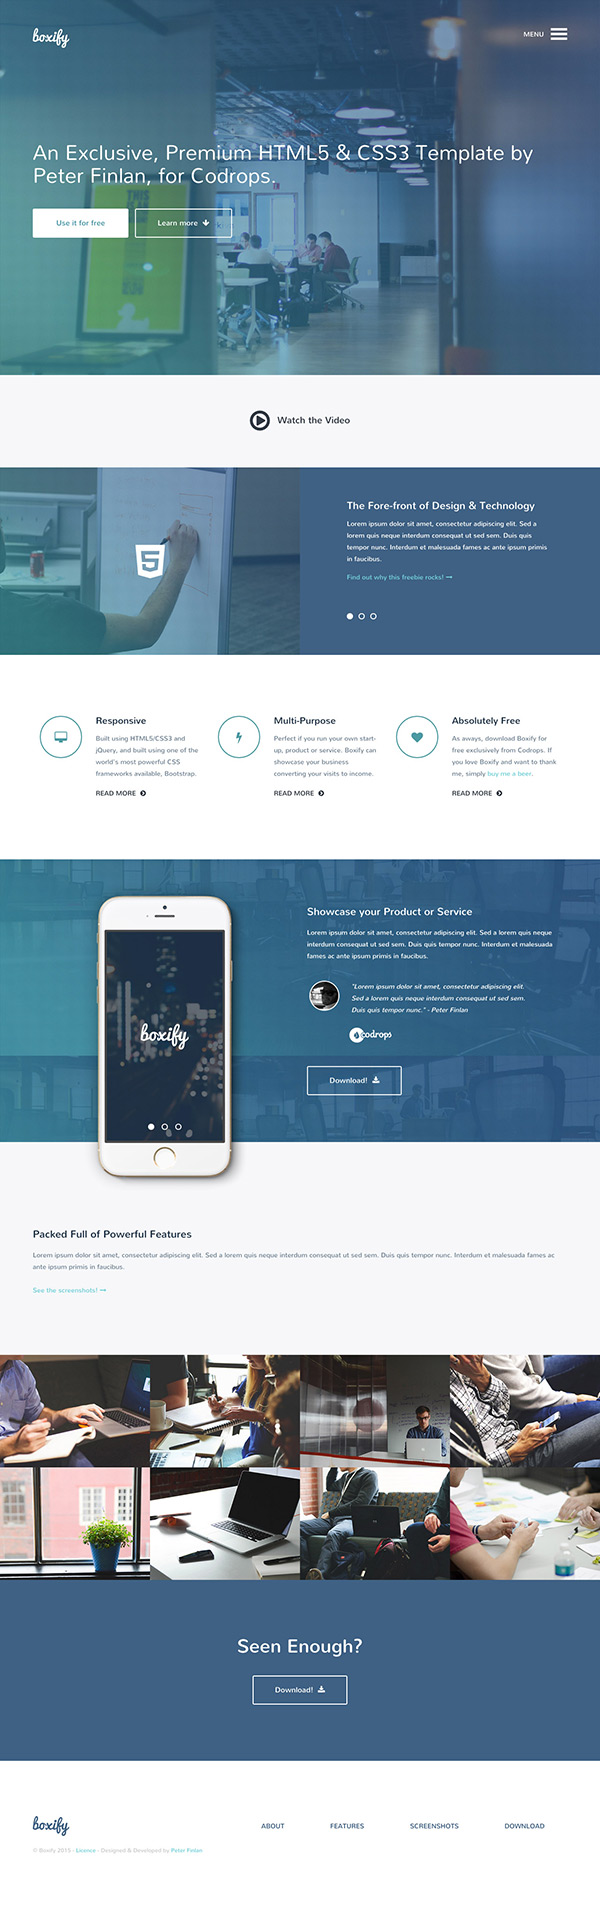 Boxify - Free responsive One Page HTML template